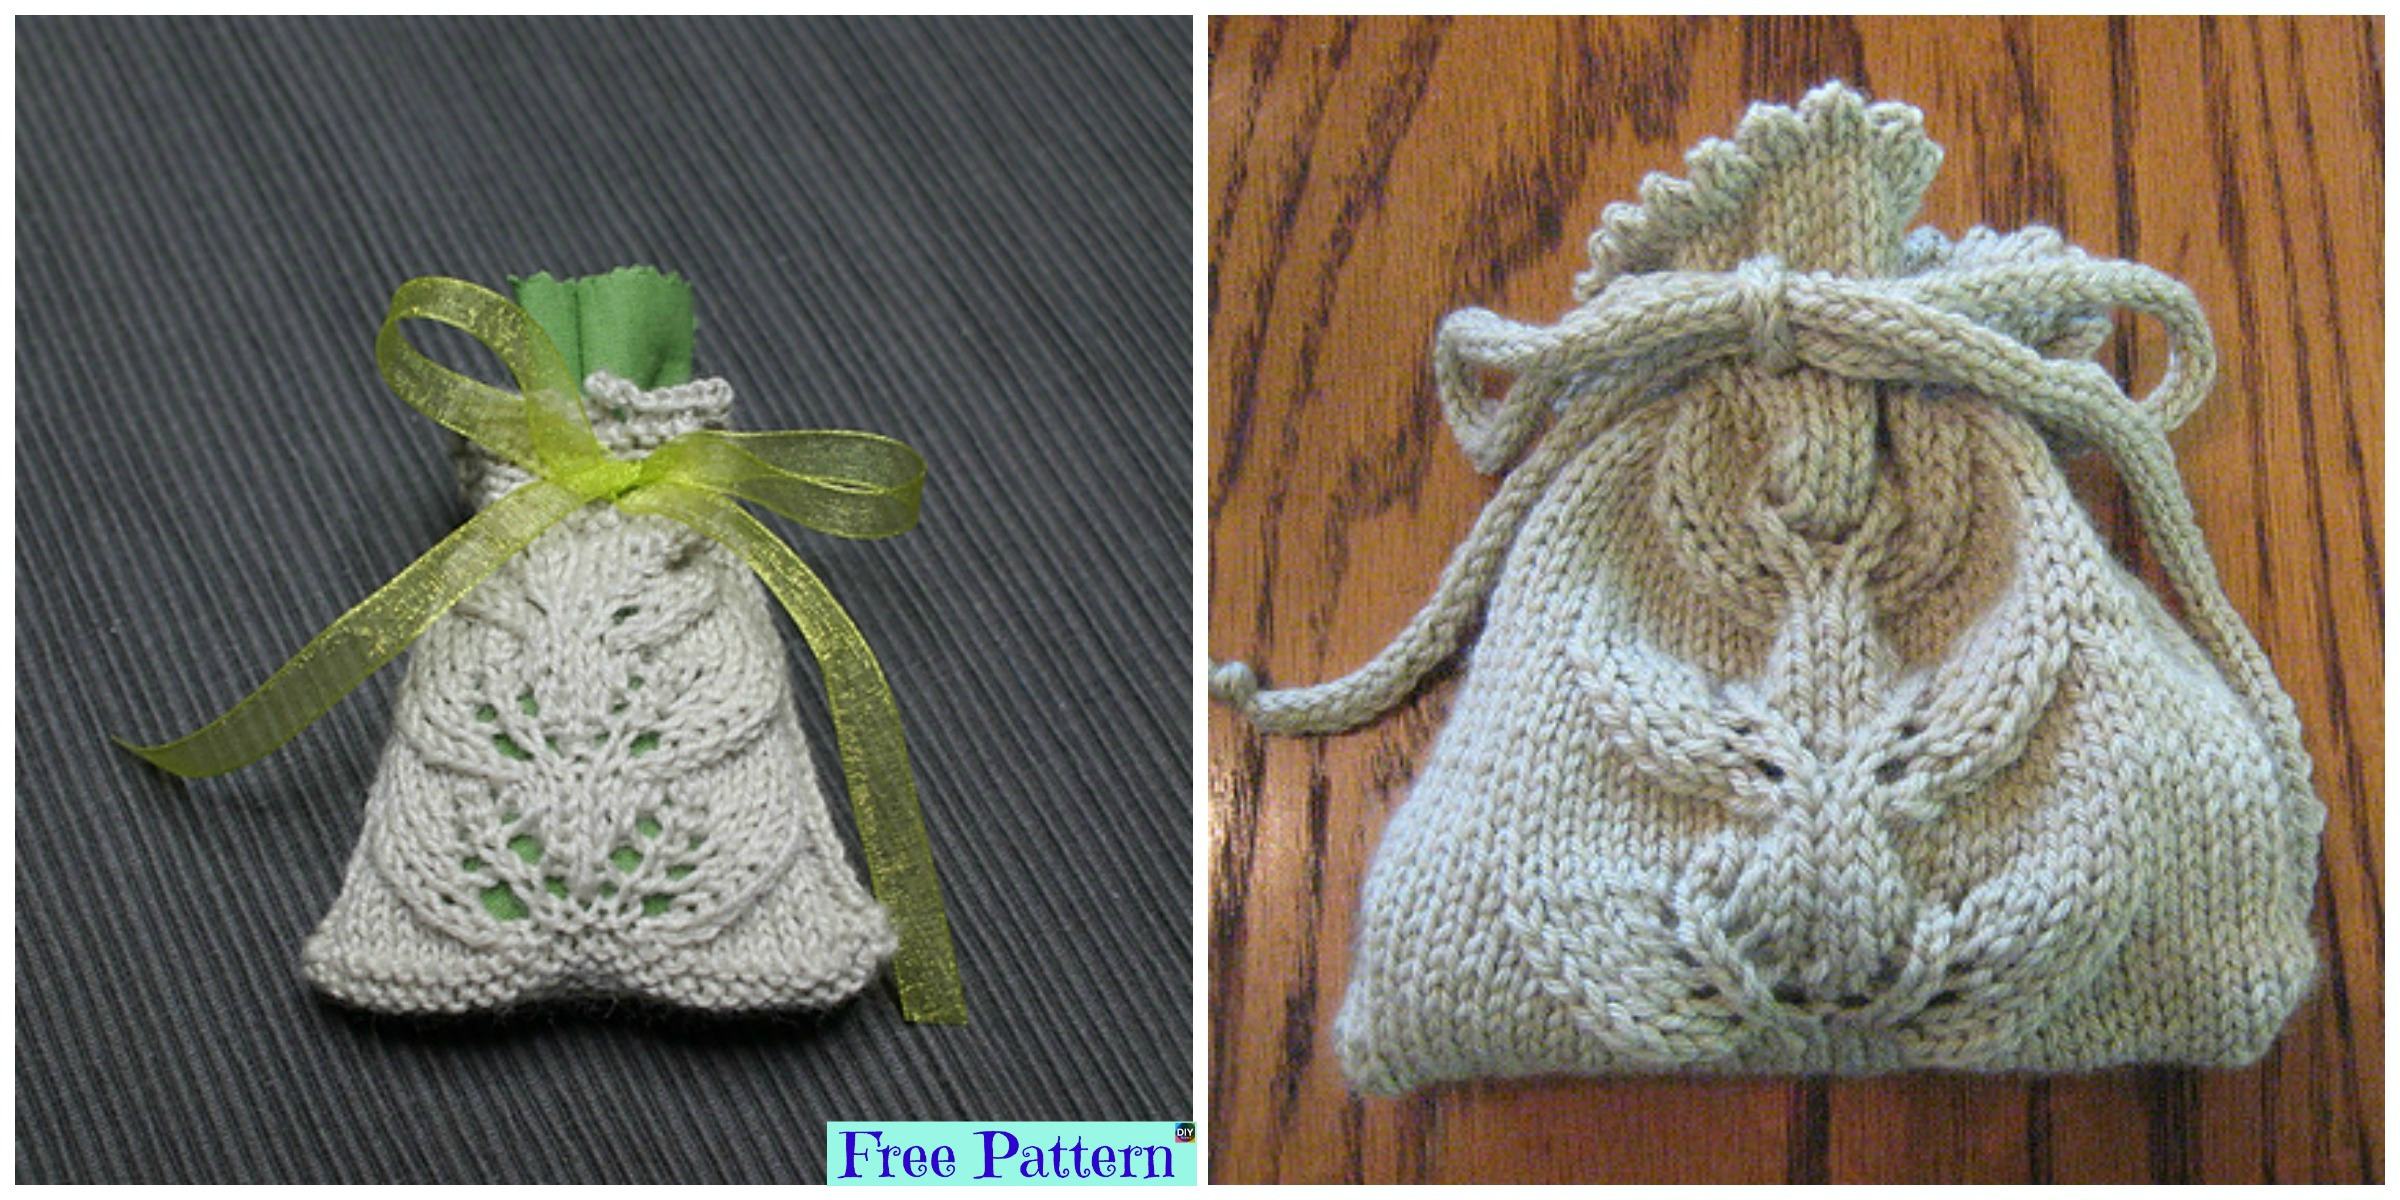 diy4ever- Knit Small Lace Bag - Free Pattern